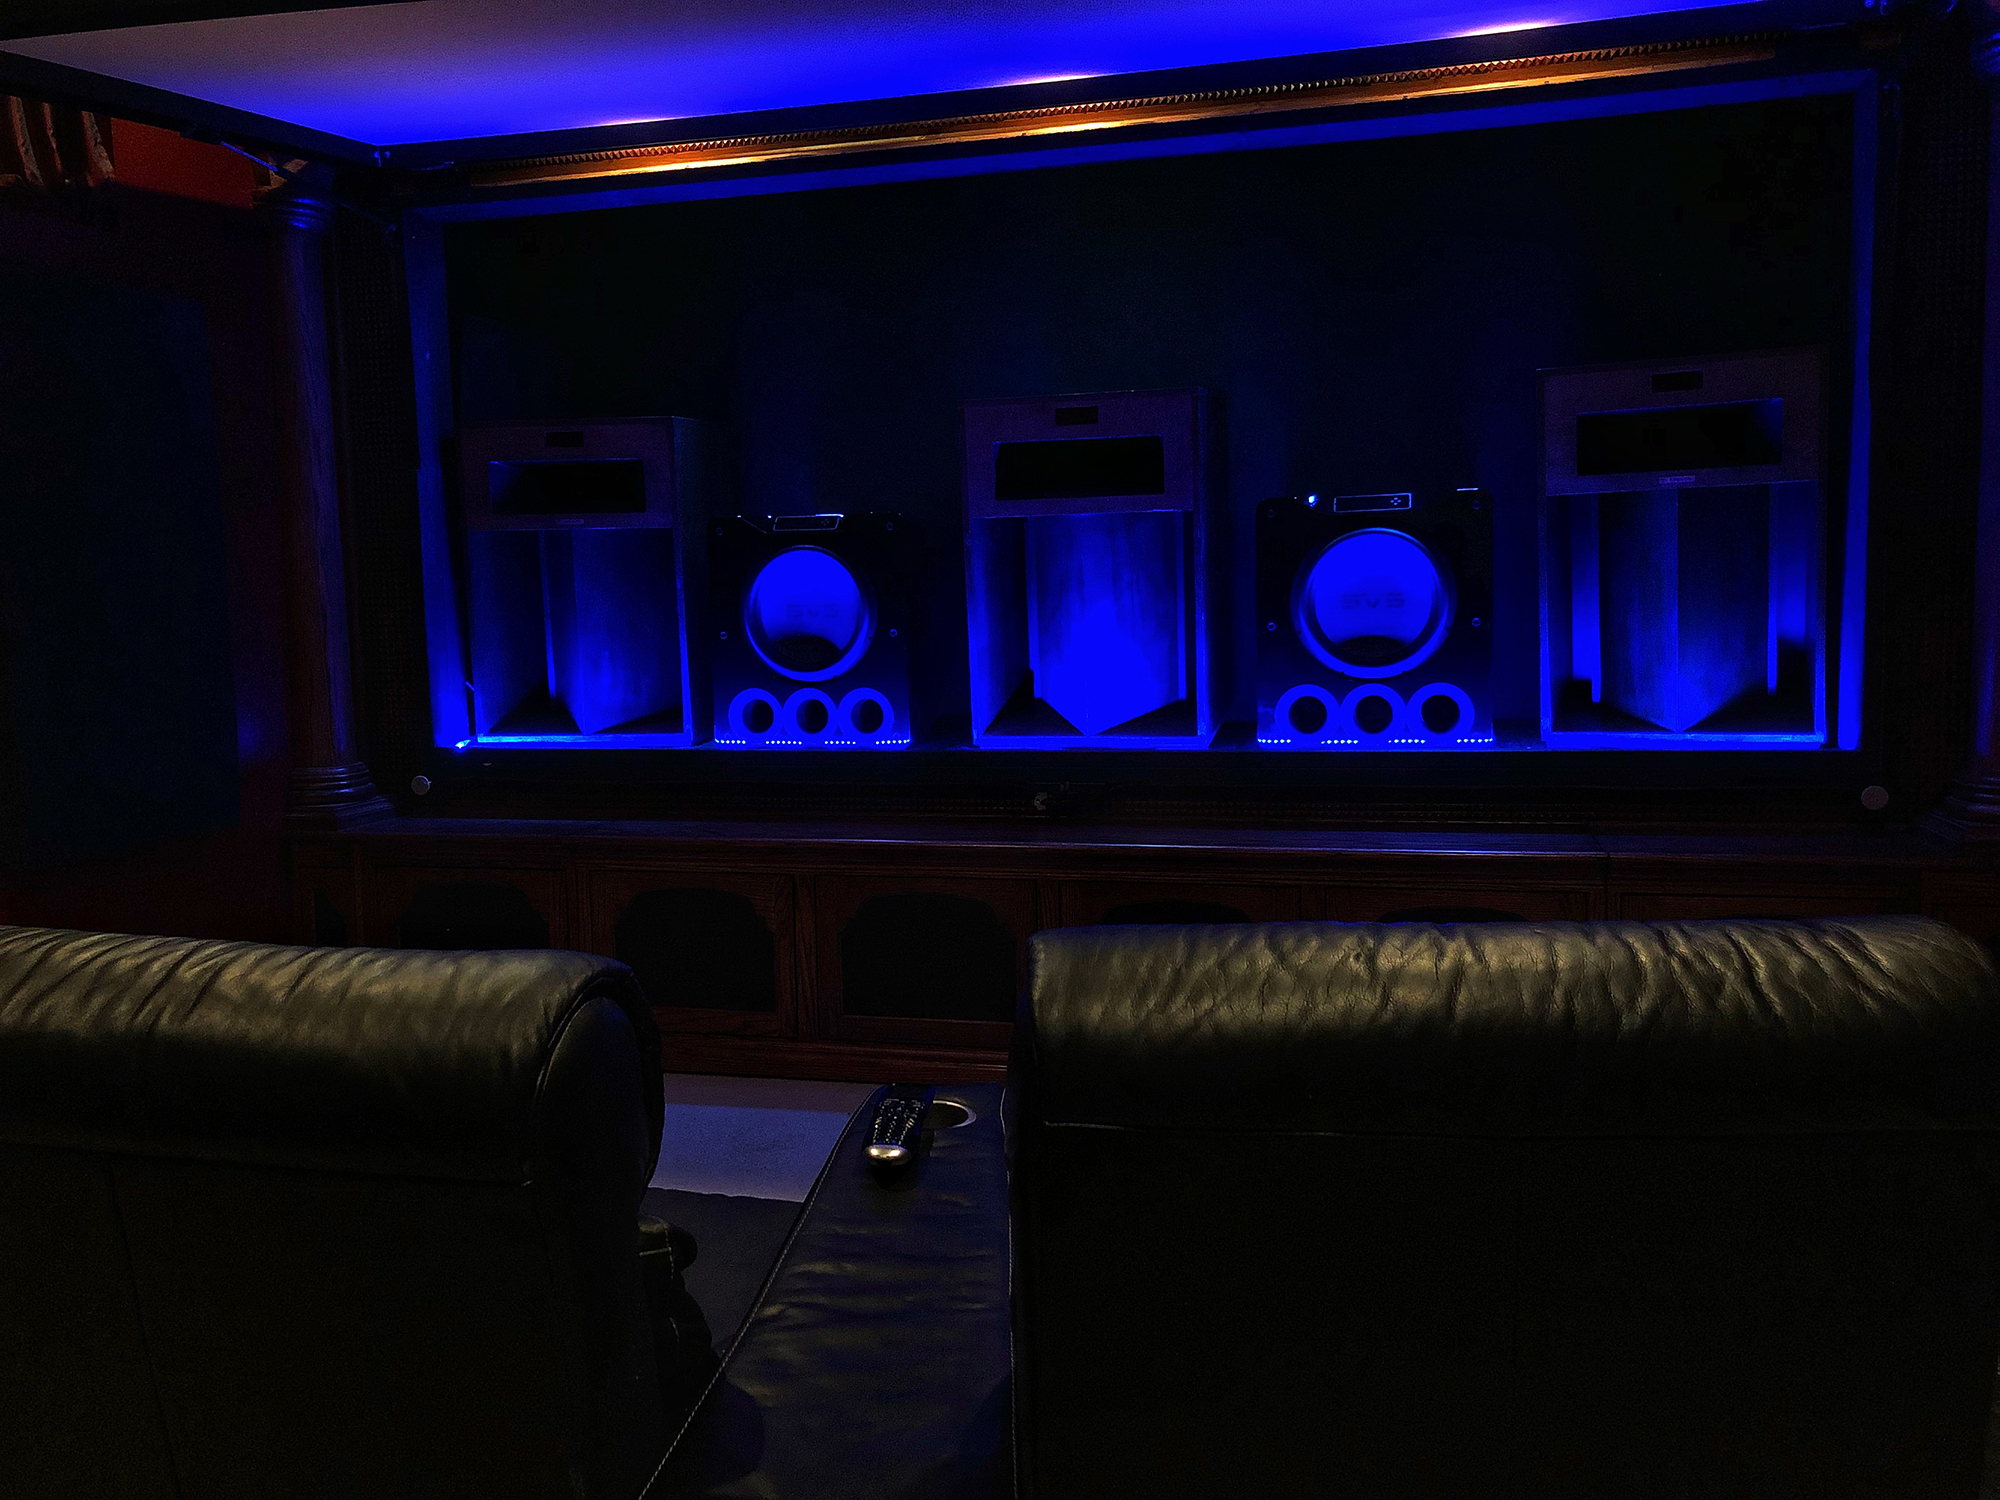 Youthman's Home Theater 2 0 Build - Page 9 - AVS Forum